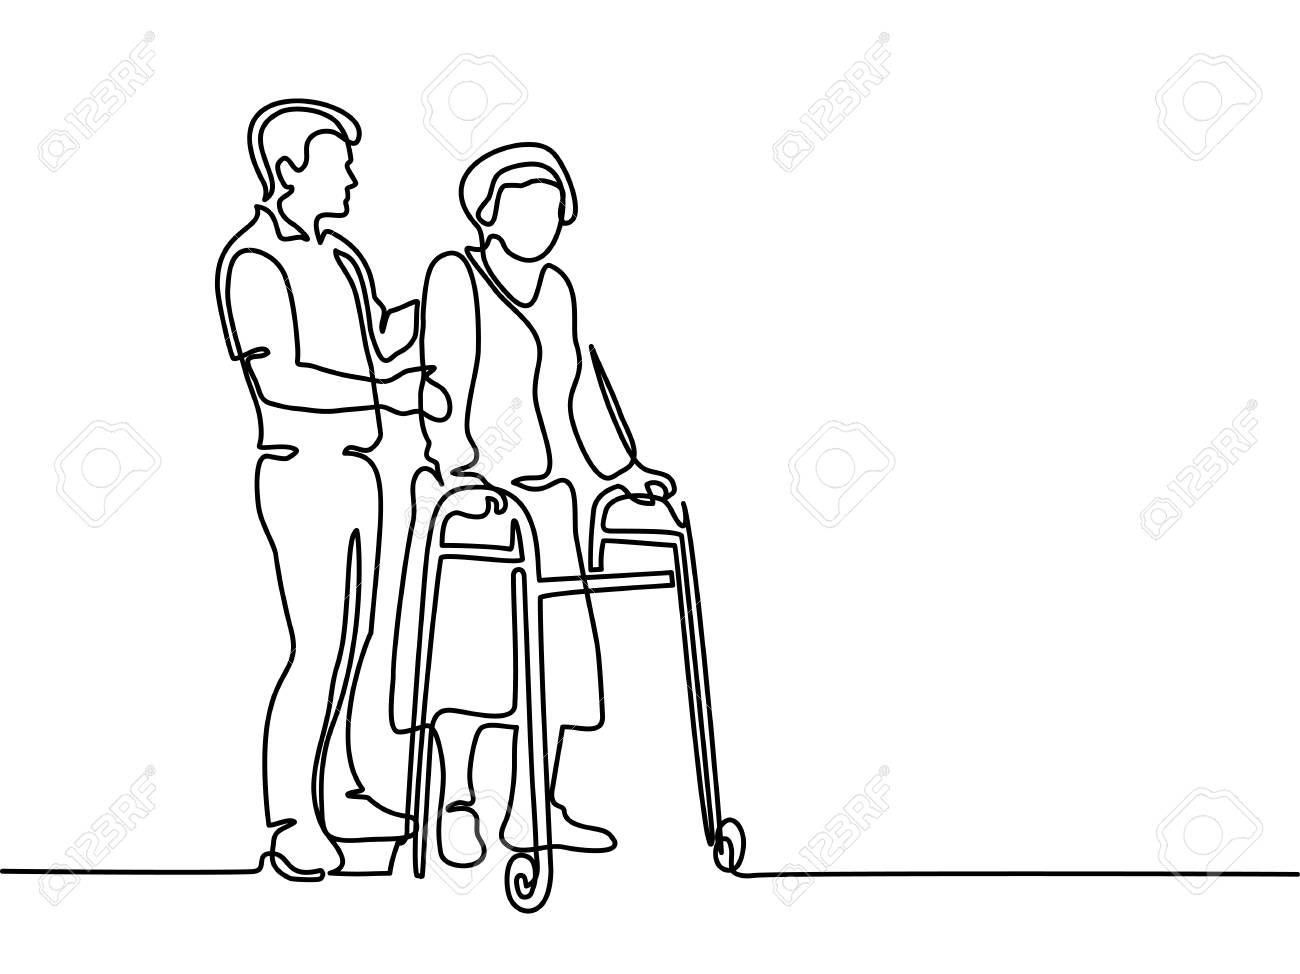 Continuous line drawing. Young man help old woman using a walking frame. Vector illustration - 88860437